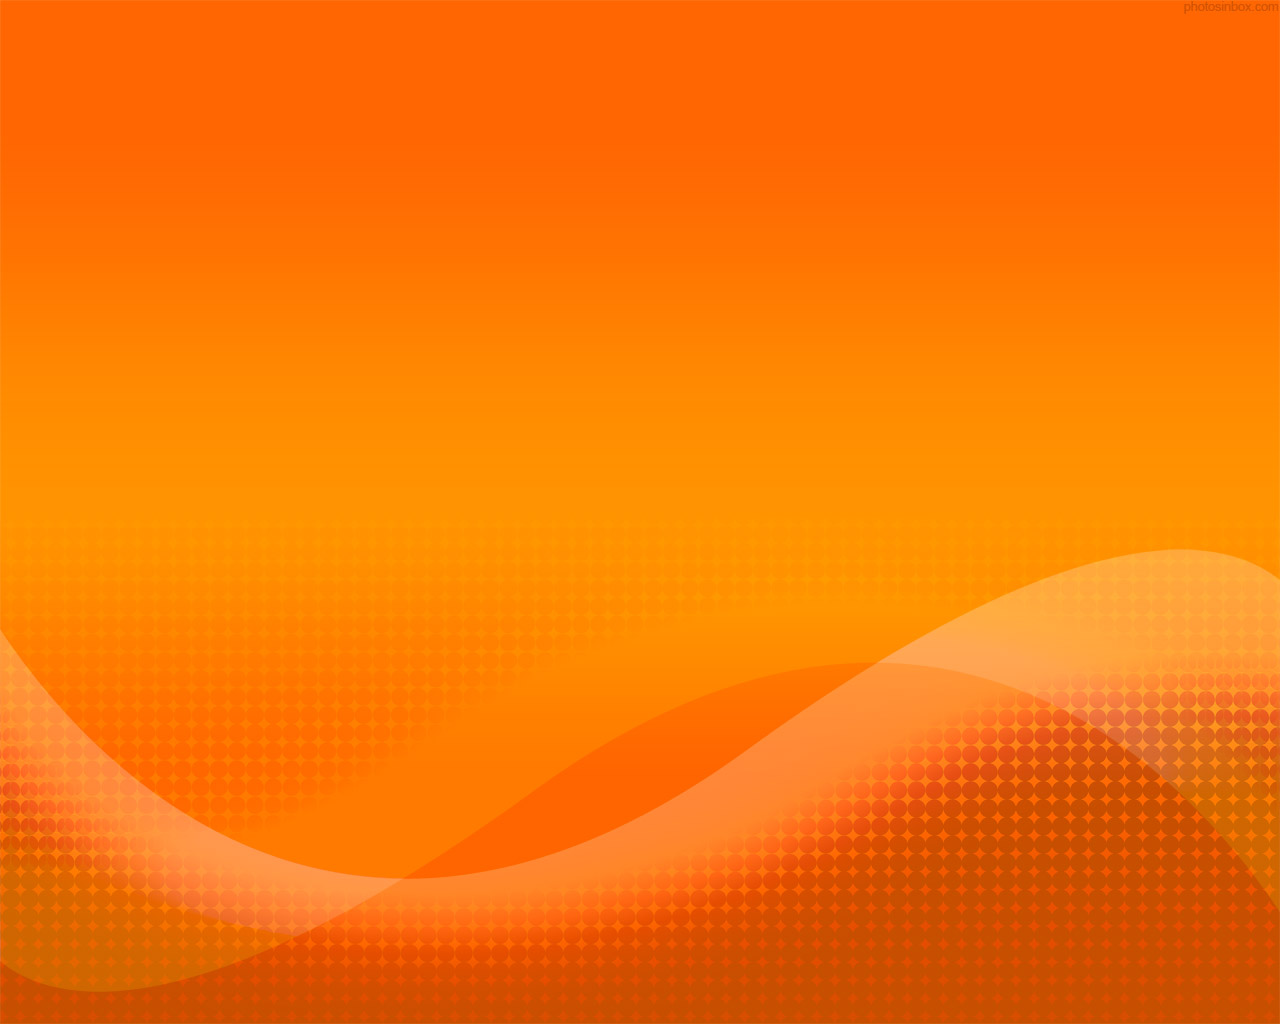 Enlarge Background 1280x1024px Abstract orange halftone background 1280x1024